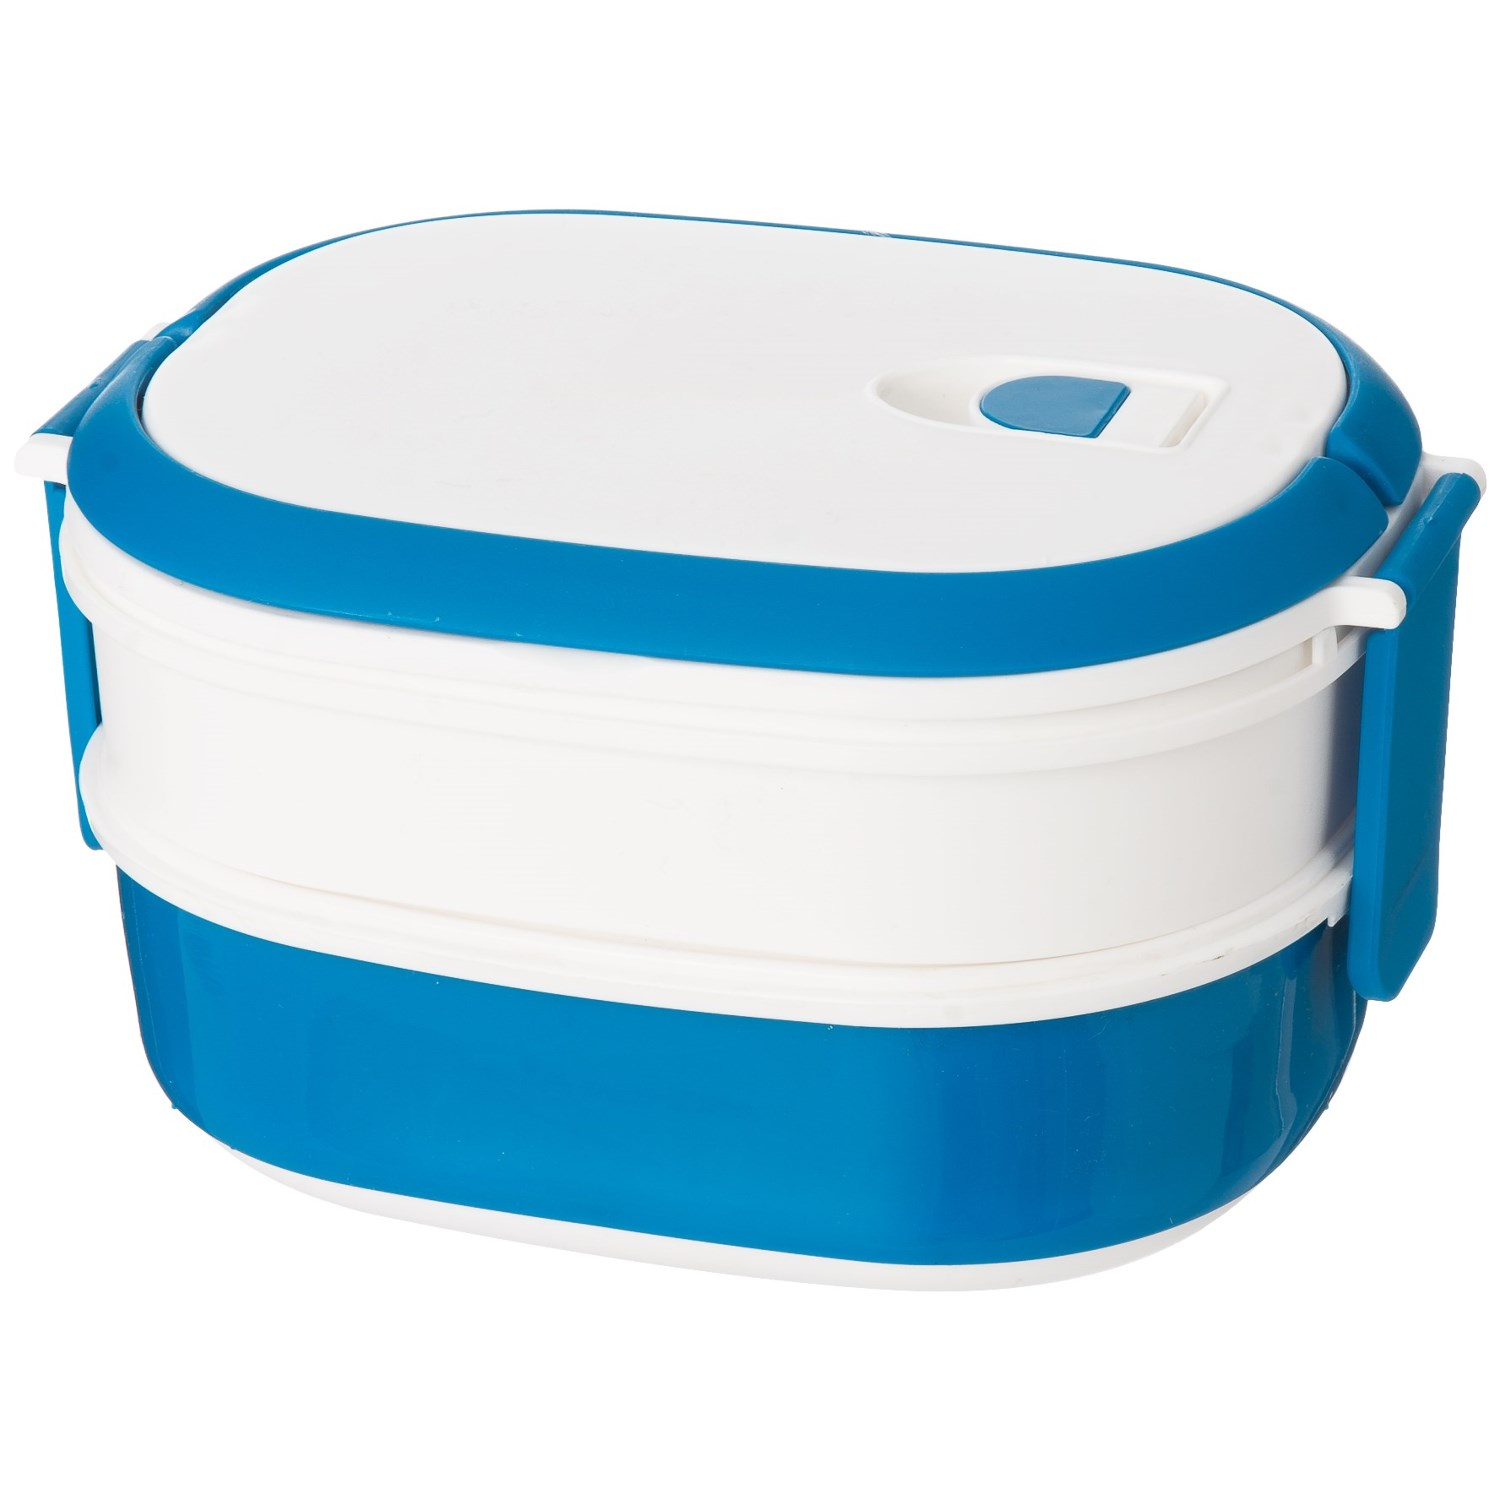 b7396fbb7ed1 Kitchen Details Two-Tier Microwavable Lunch Box - BPA-Free